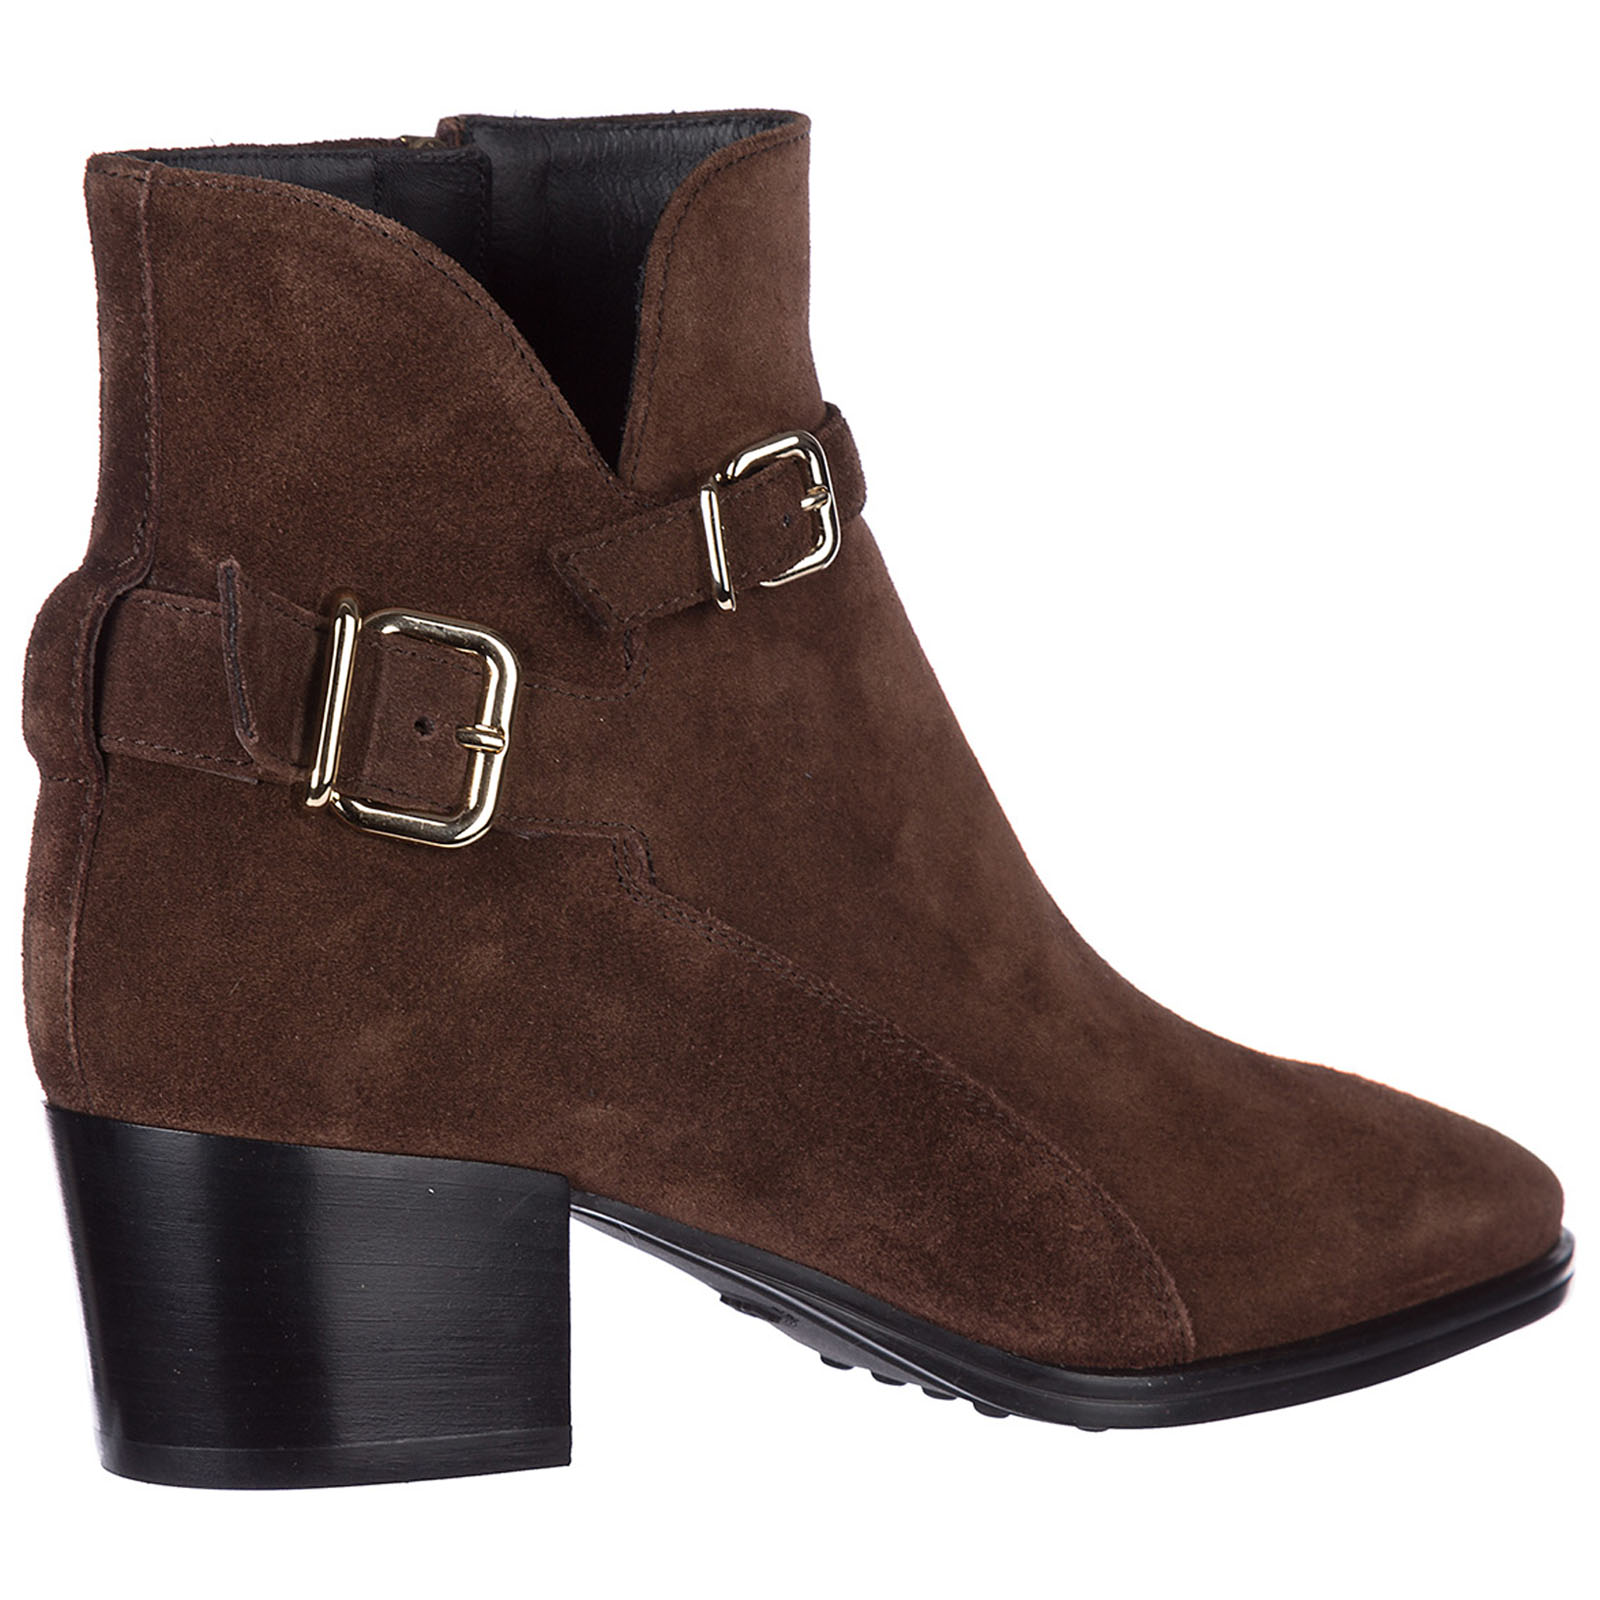 Women's suede heel ankle boots booties